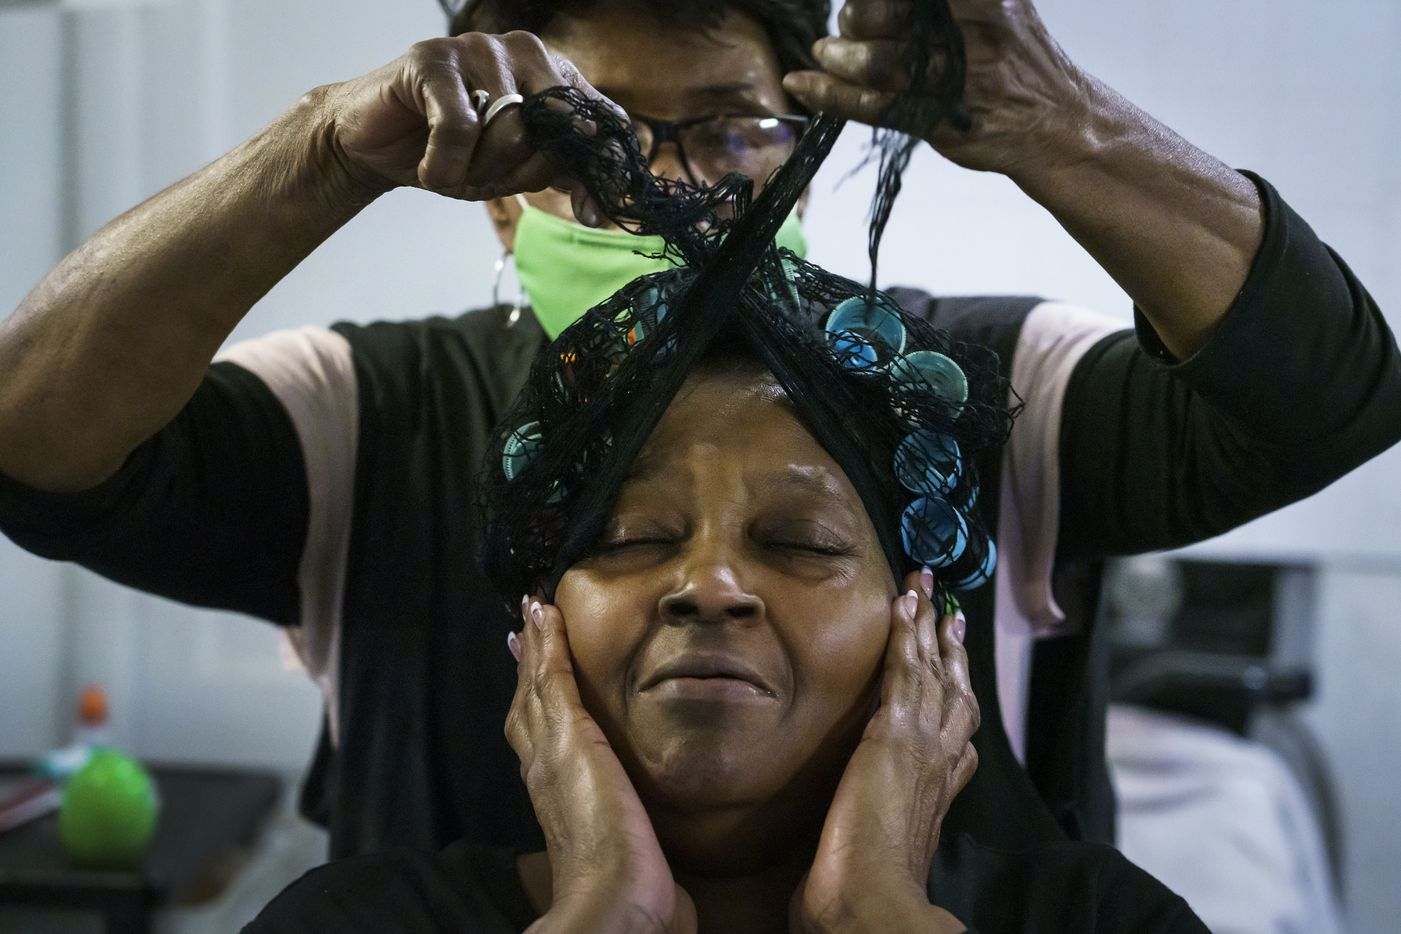 Earnestine Tarrant styles the hair of Altha Hearne at her hair salon in South Dallas on her final day working before her retirement, Thursday, Dec. 31, 2020. Tarrant opened her beauty salon in a tiny house on a corner in 1979. After four decades in business, she decided to close on New Year's Eve.